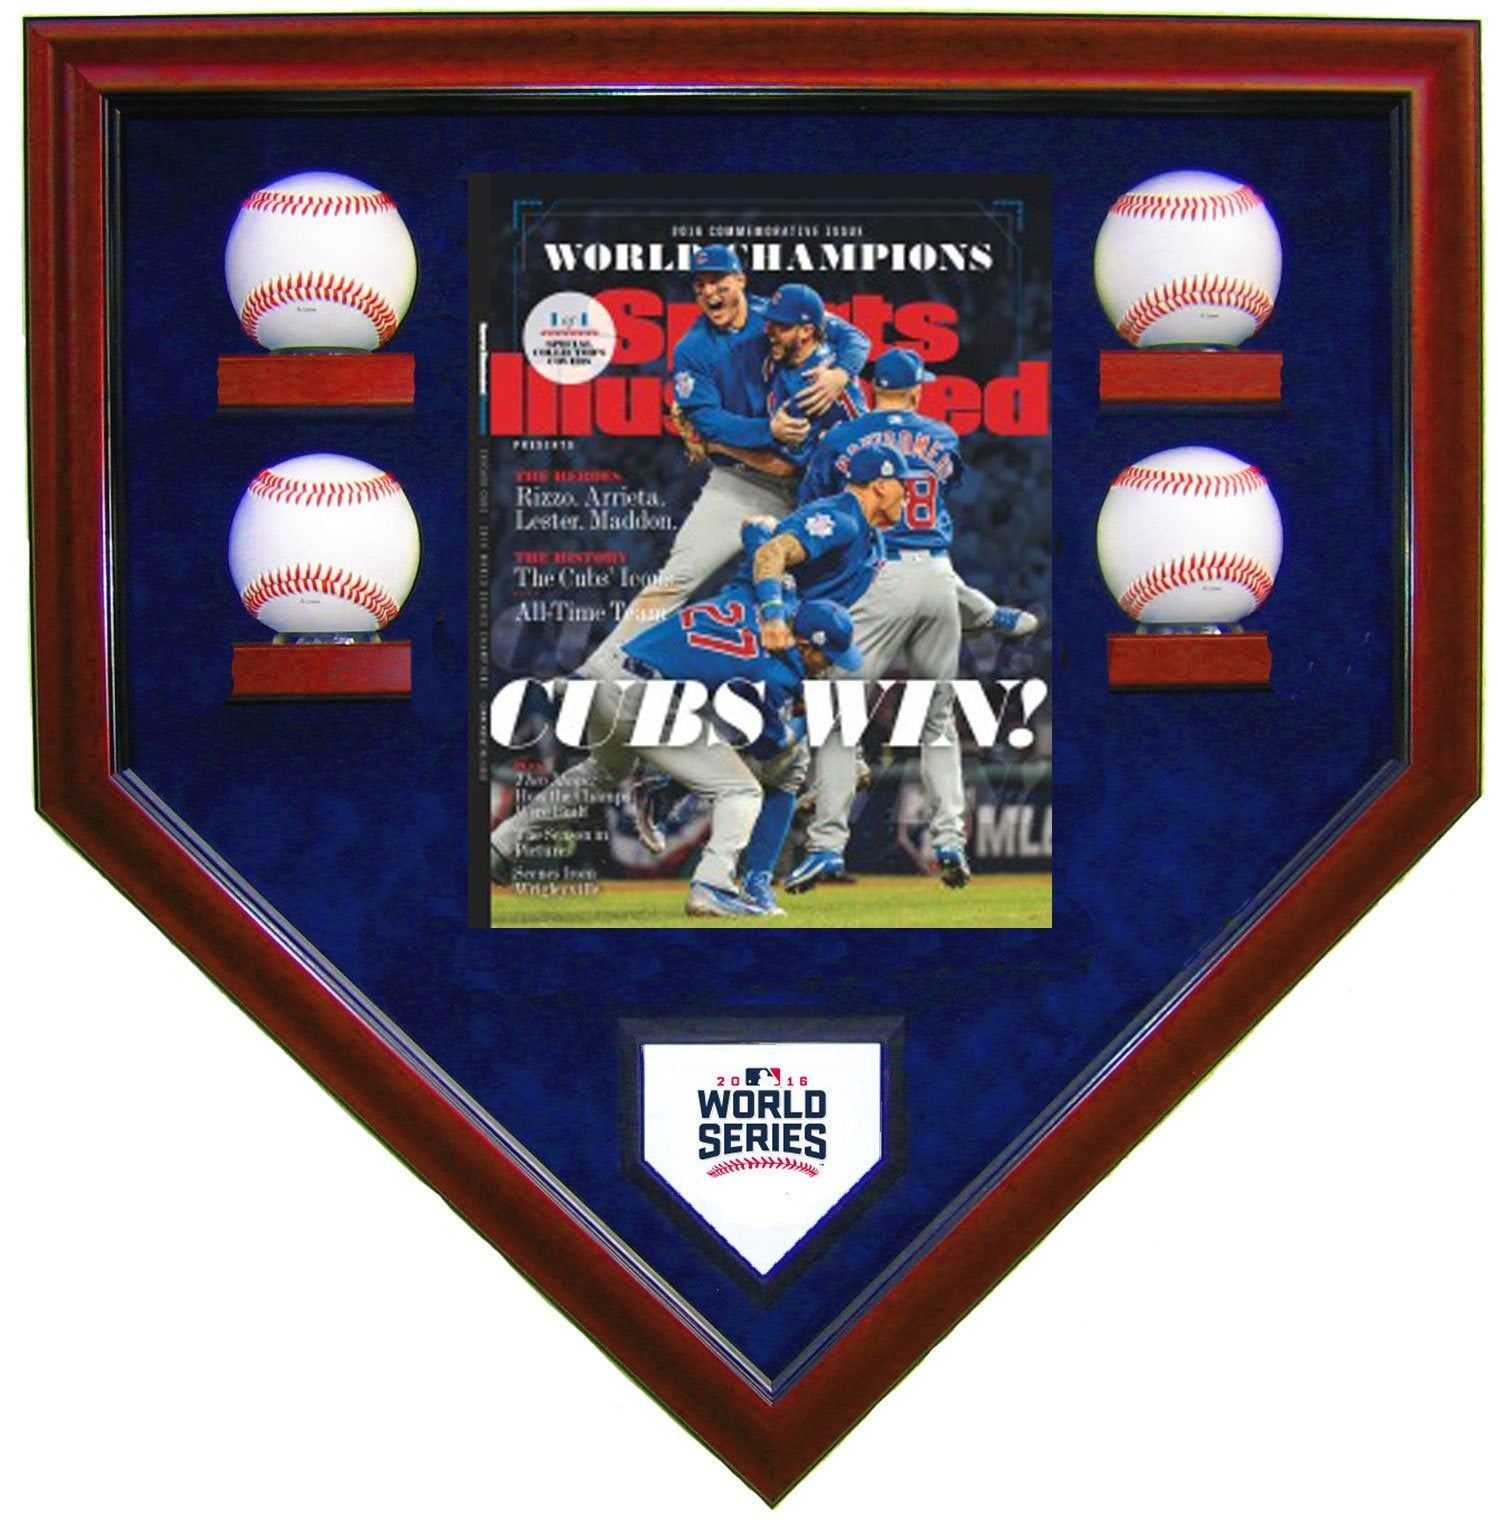 4 BASEBALL W/SI CHICAGO CUBS 2016 WORLD SERIES HOMEPLATE SHAPED DISPLAY CASE-Powers Sports Memorabilia